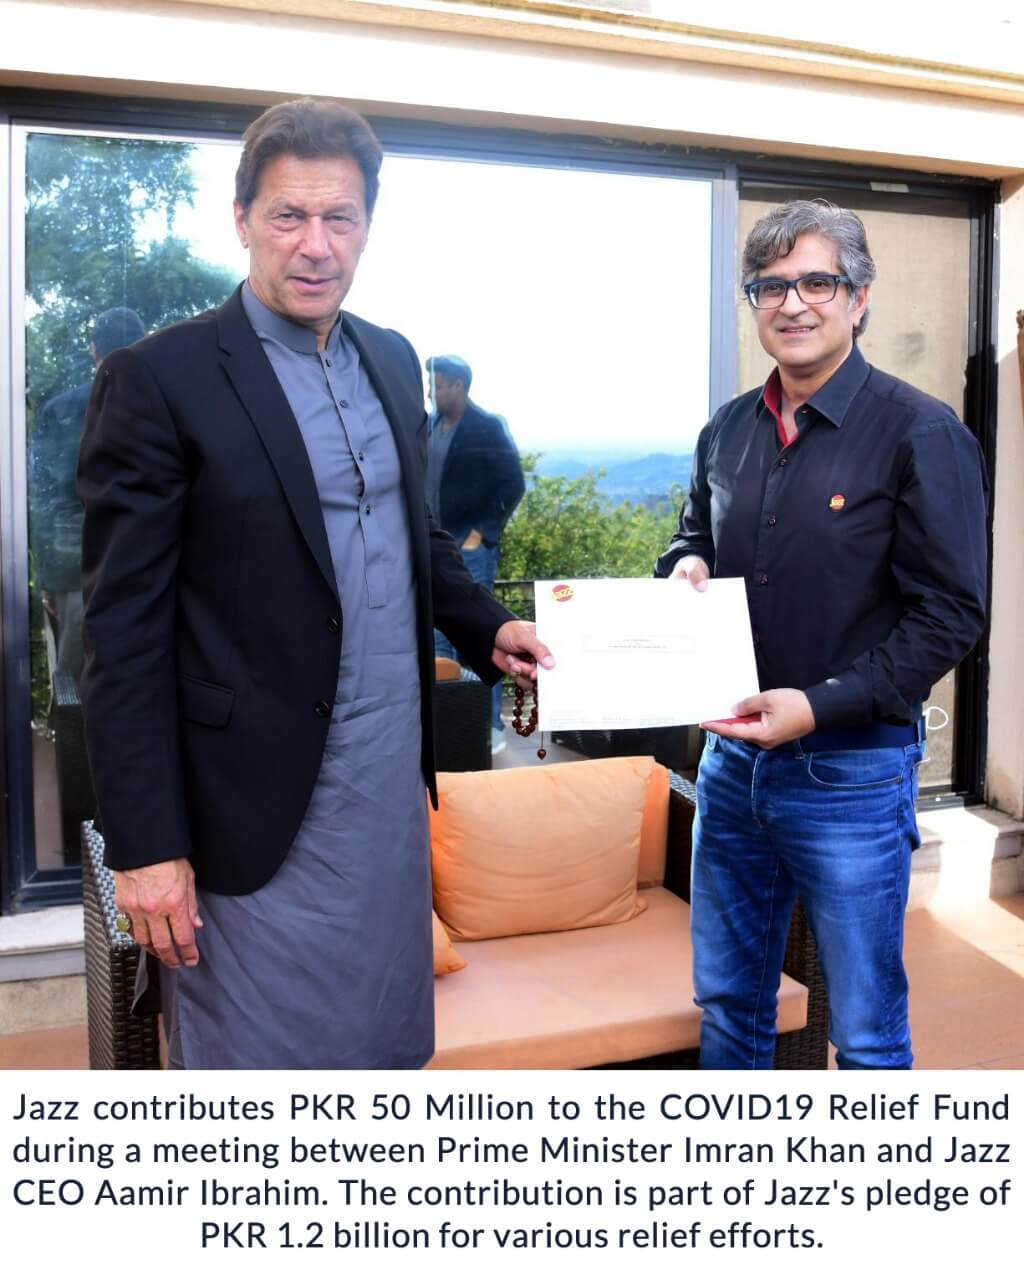 Jazz Contributes PKR 50 Million to PM's COVID-19 Relief Fund